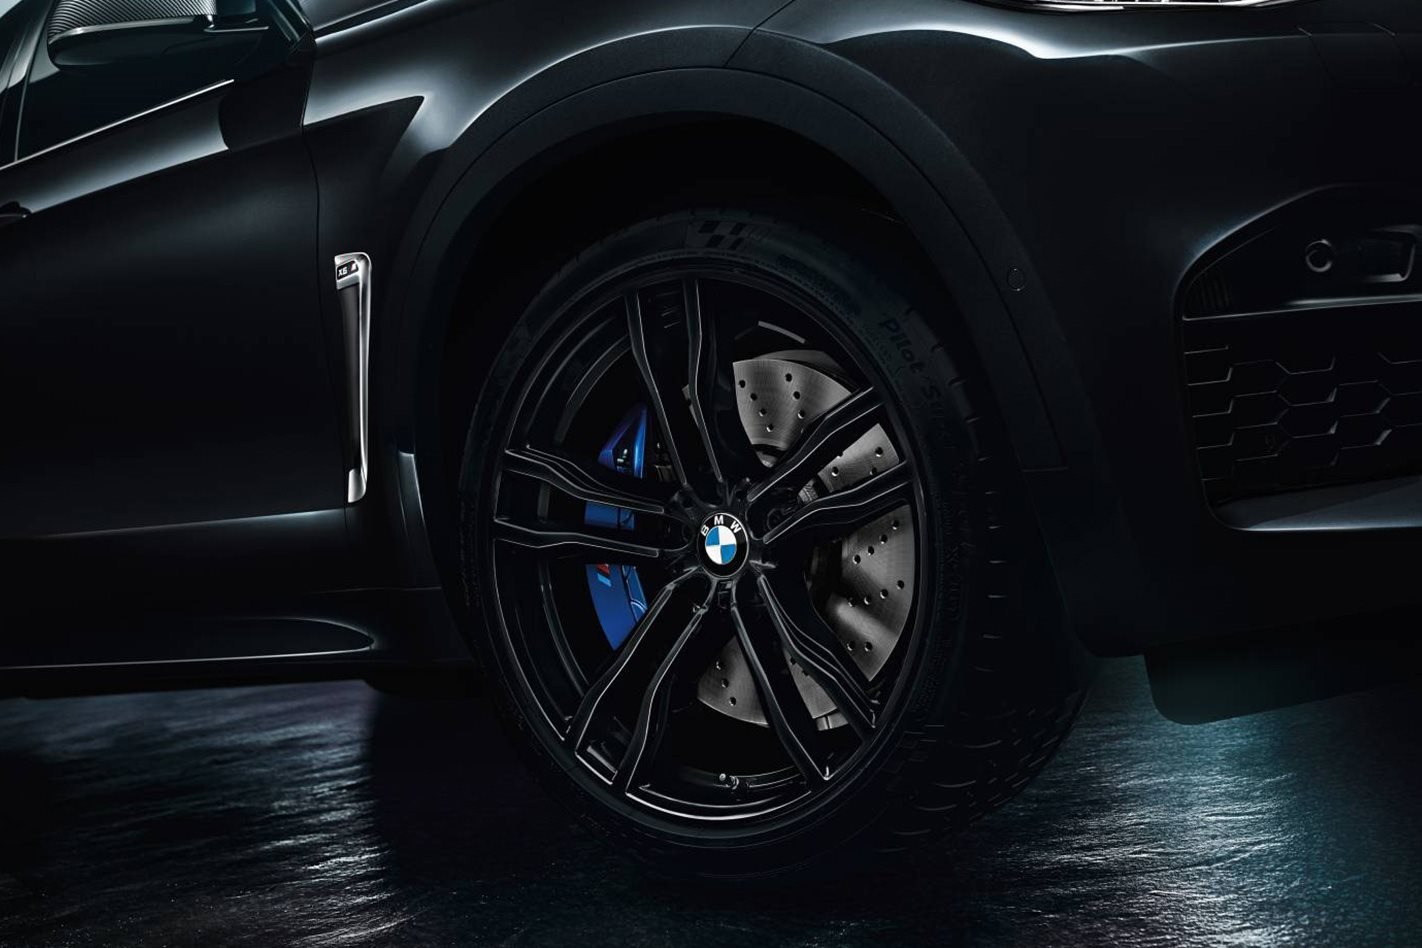 BMW X5 M and X6 M Black Fire Editions wheel